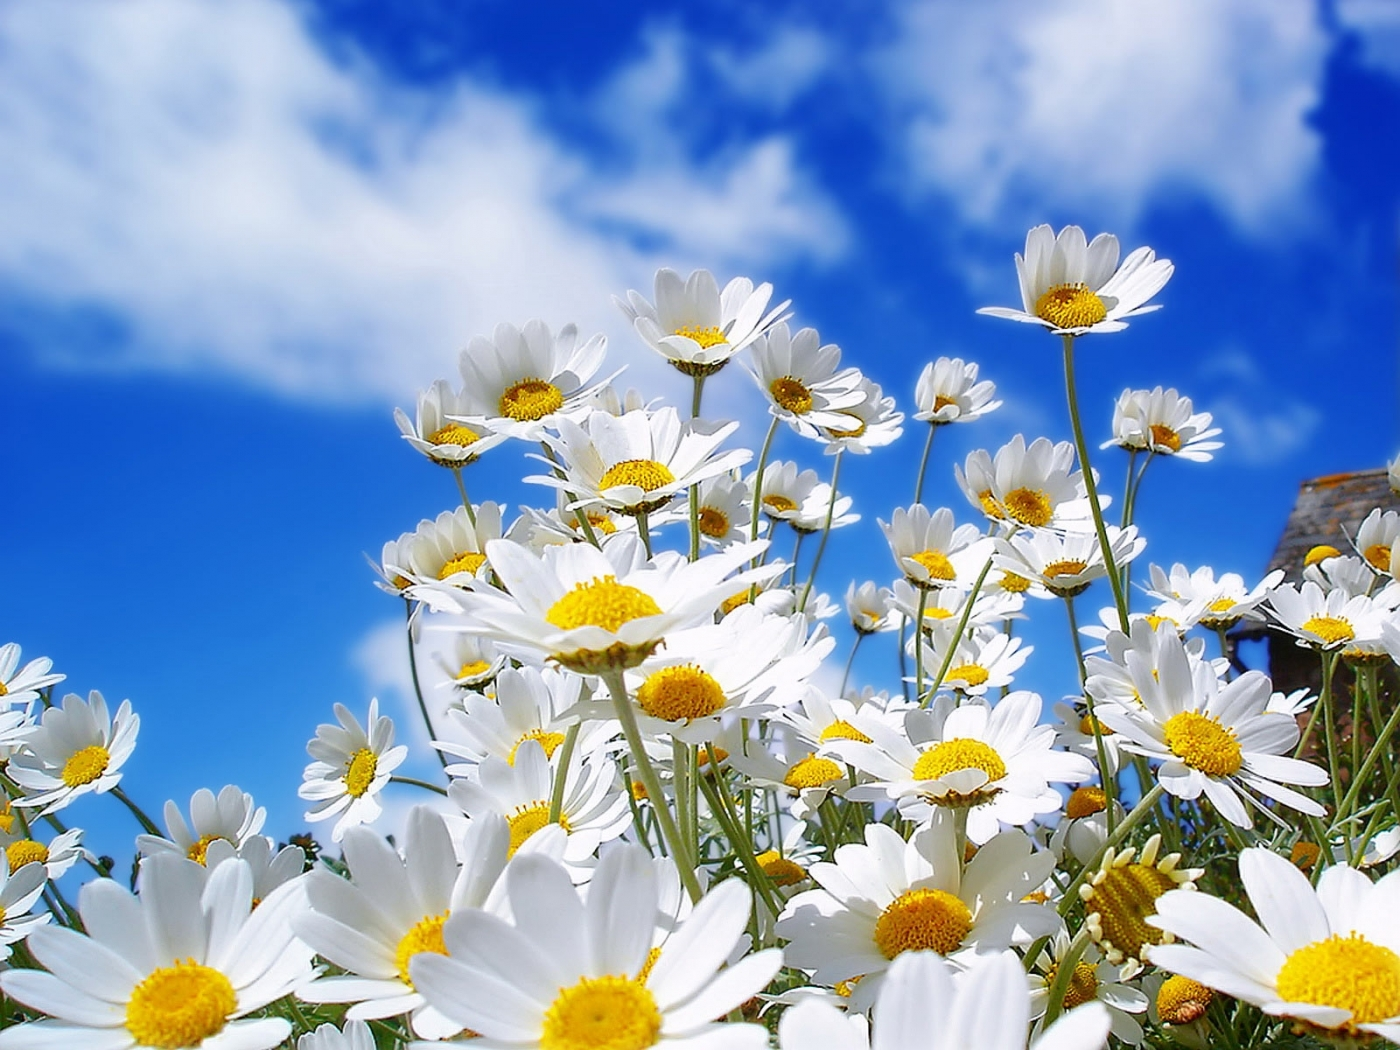 43822 download wallpaper Plants, Flowers, Camomile screensavers and pictures for free